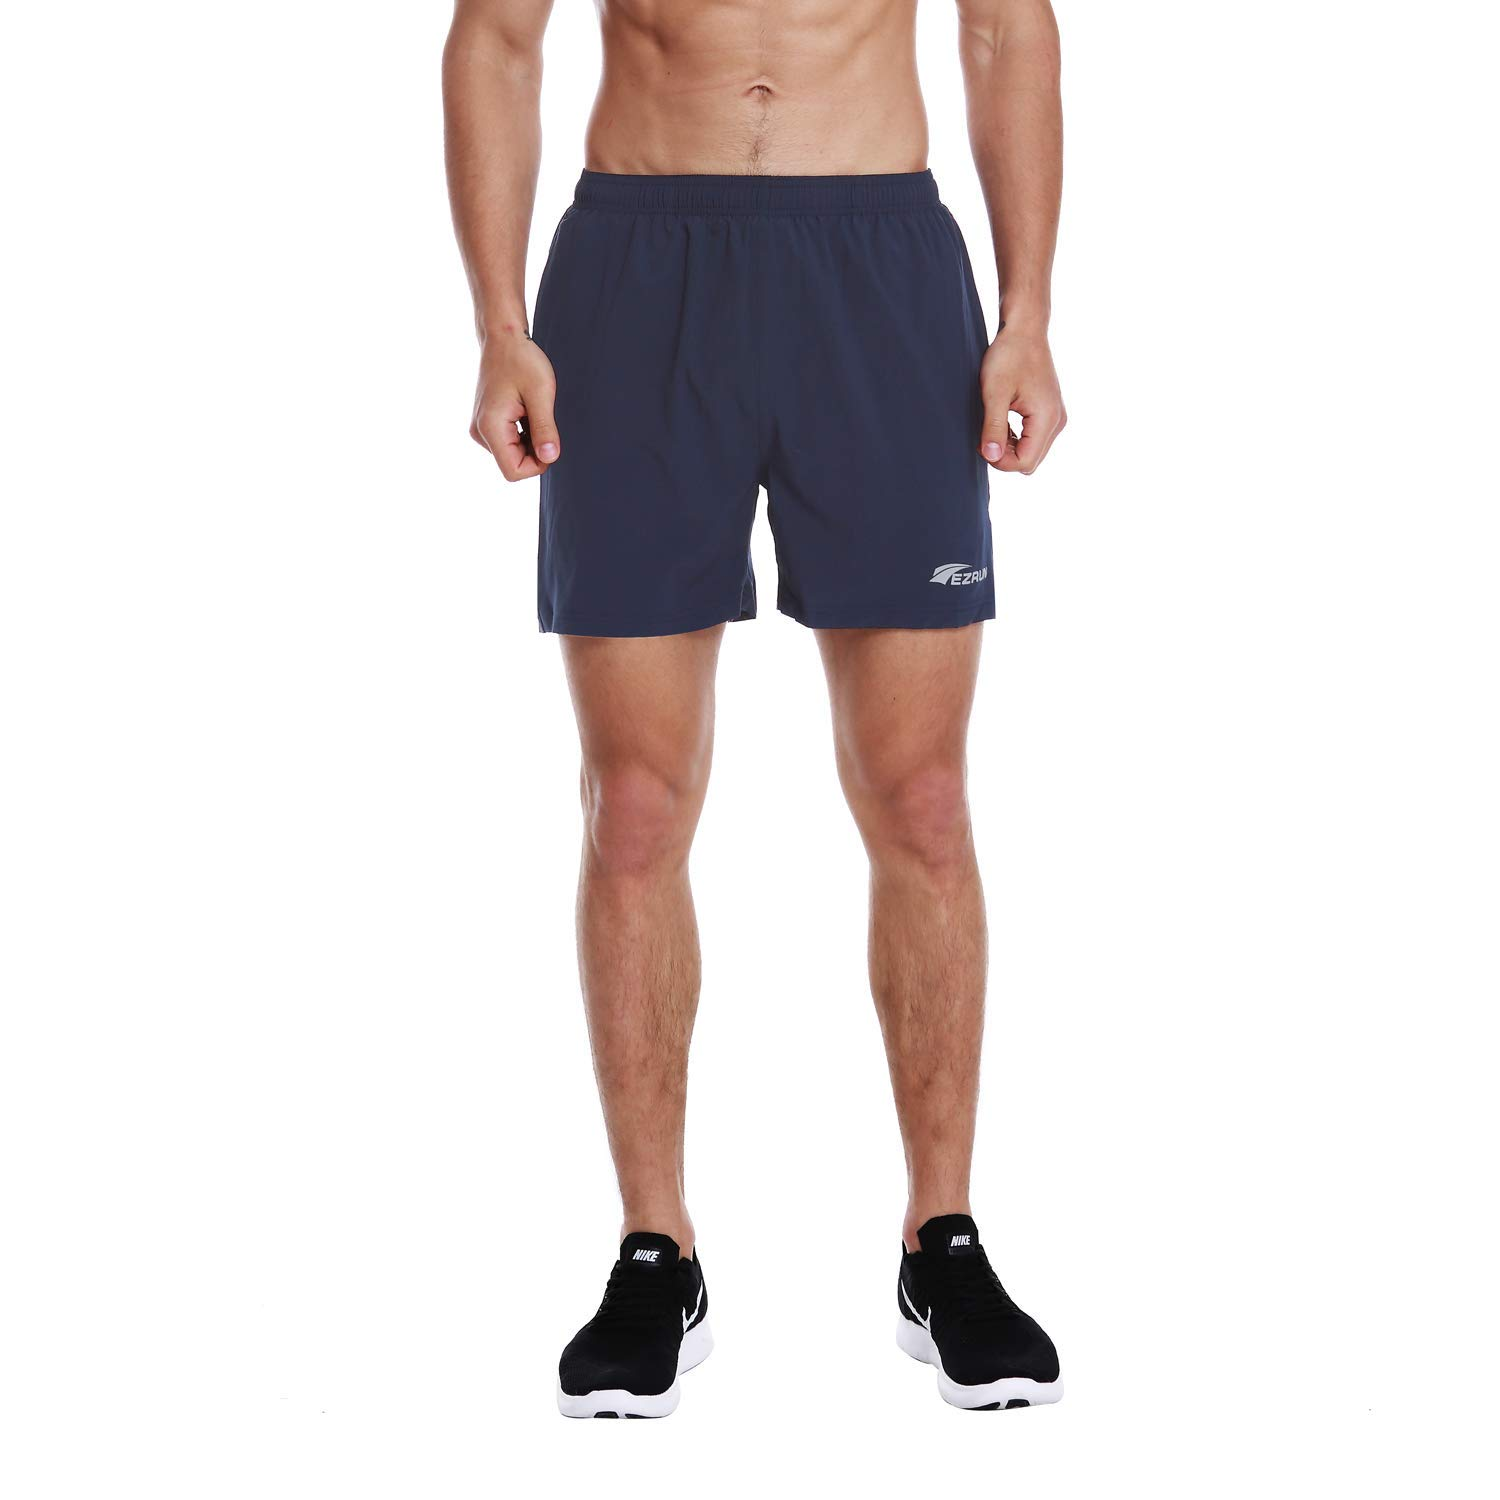 EZRUN Men's 5 Inches Running Workout Shorts Quick Dry Lightweight Athletic Shorts with Liner Zipper Pockets,Navy Blue,S by EZRUN